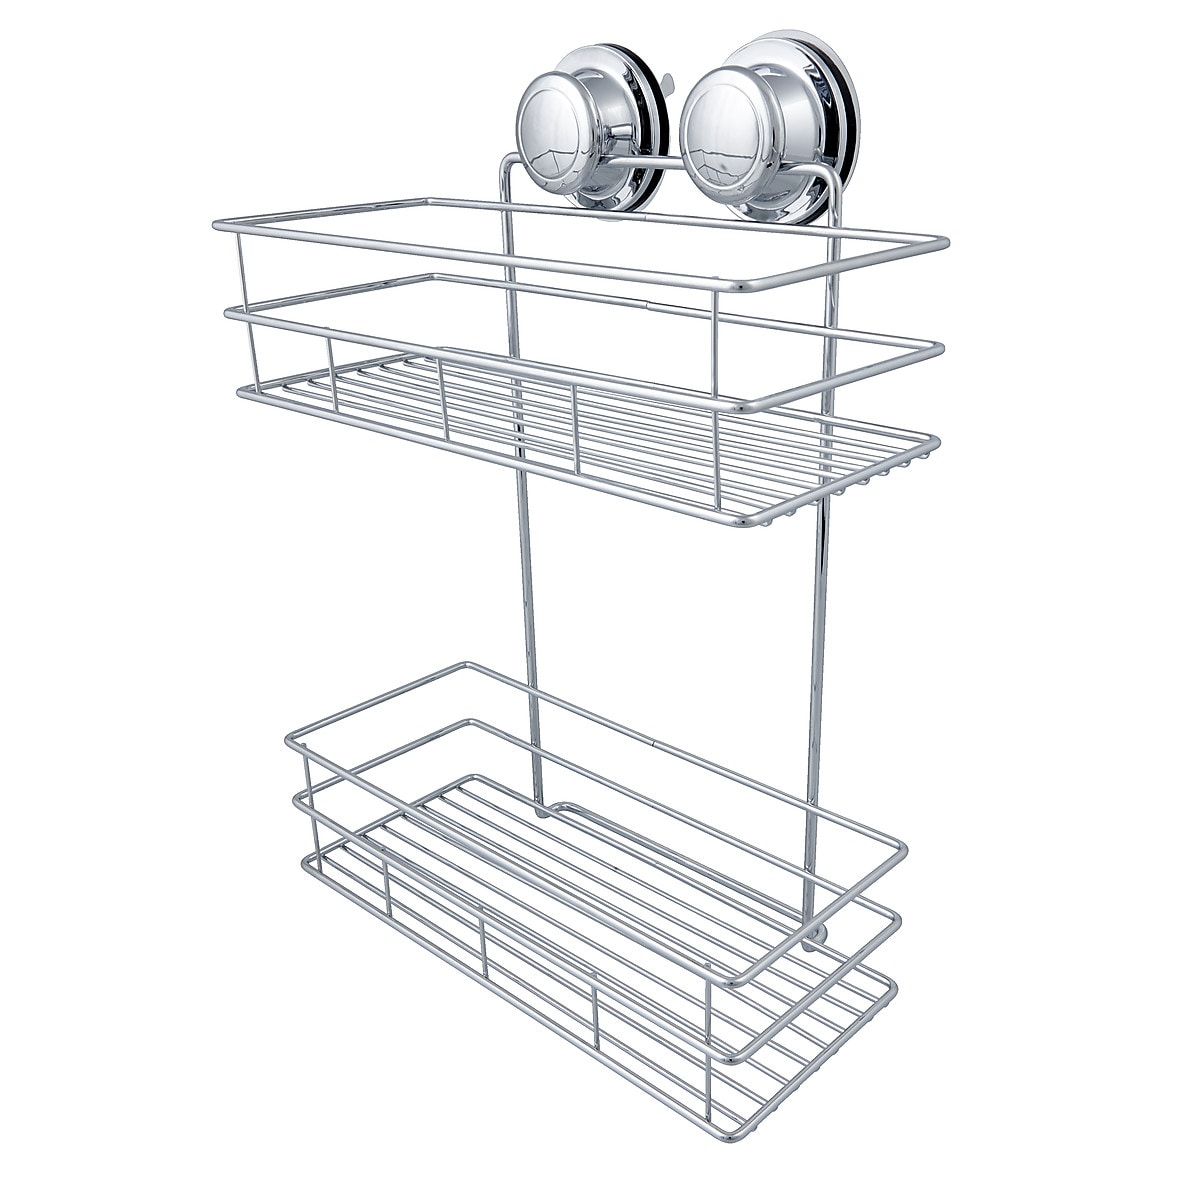 2-Tier Shower Caddy with Vacuum Suction Cup